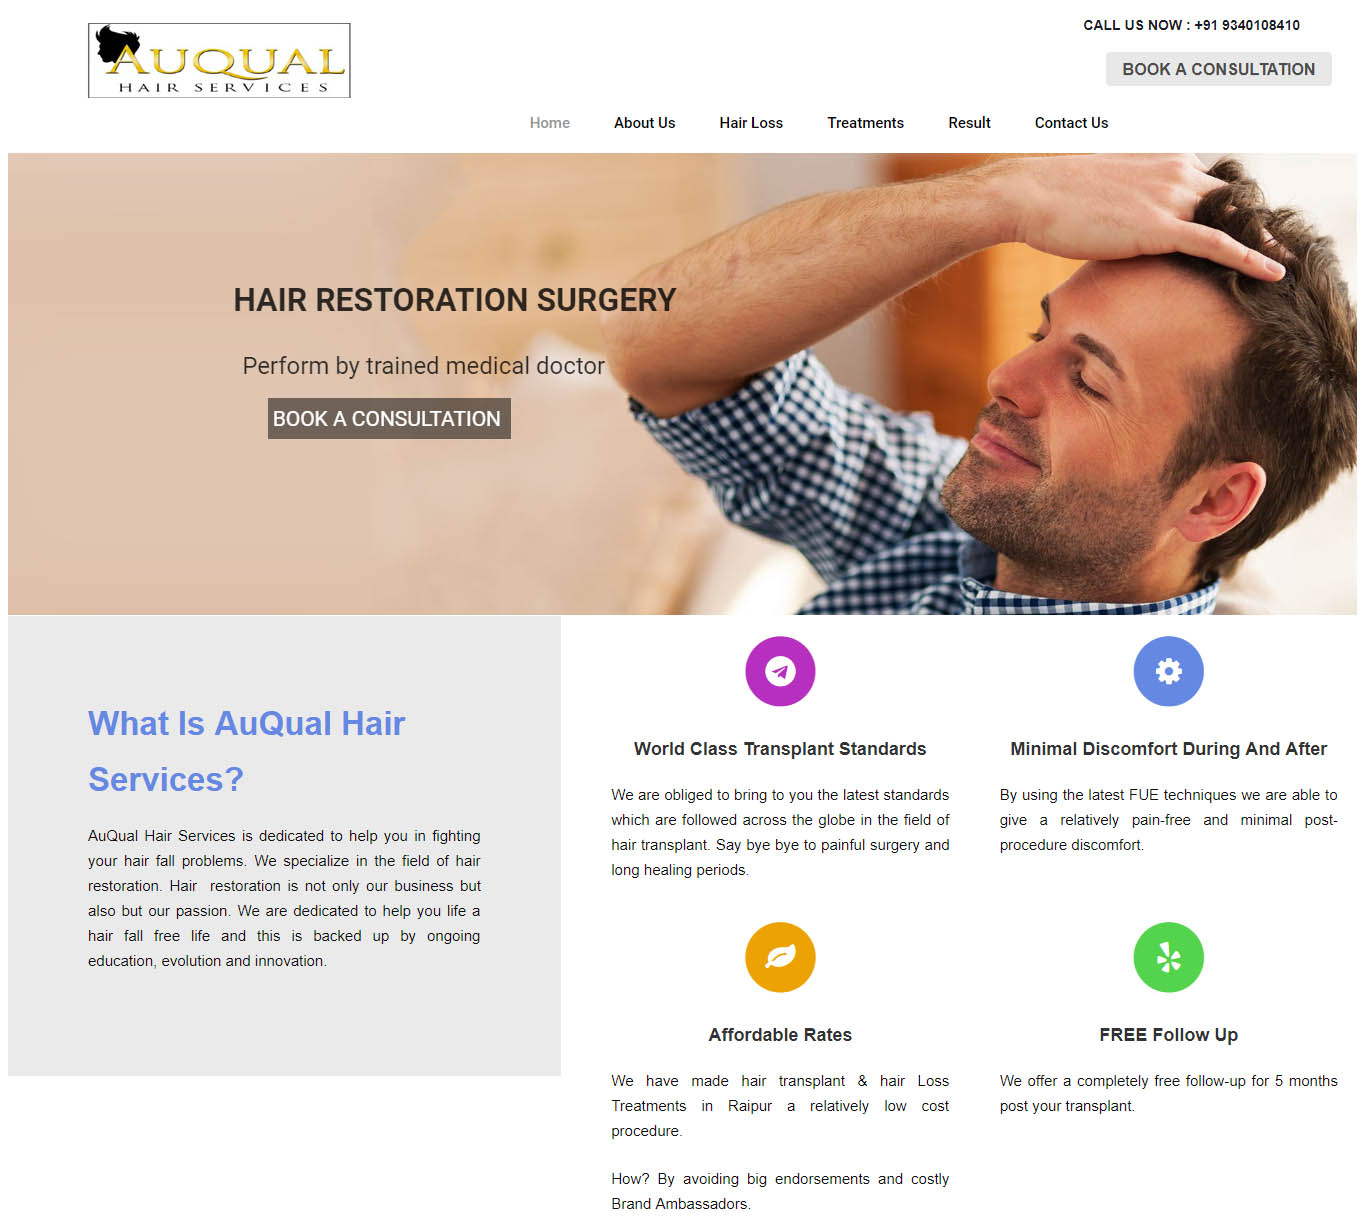 SEO for Auqual Hair Services